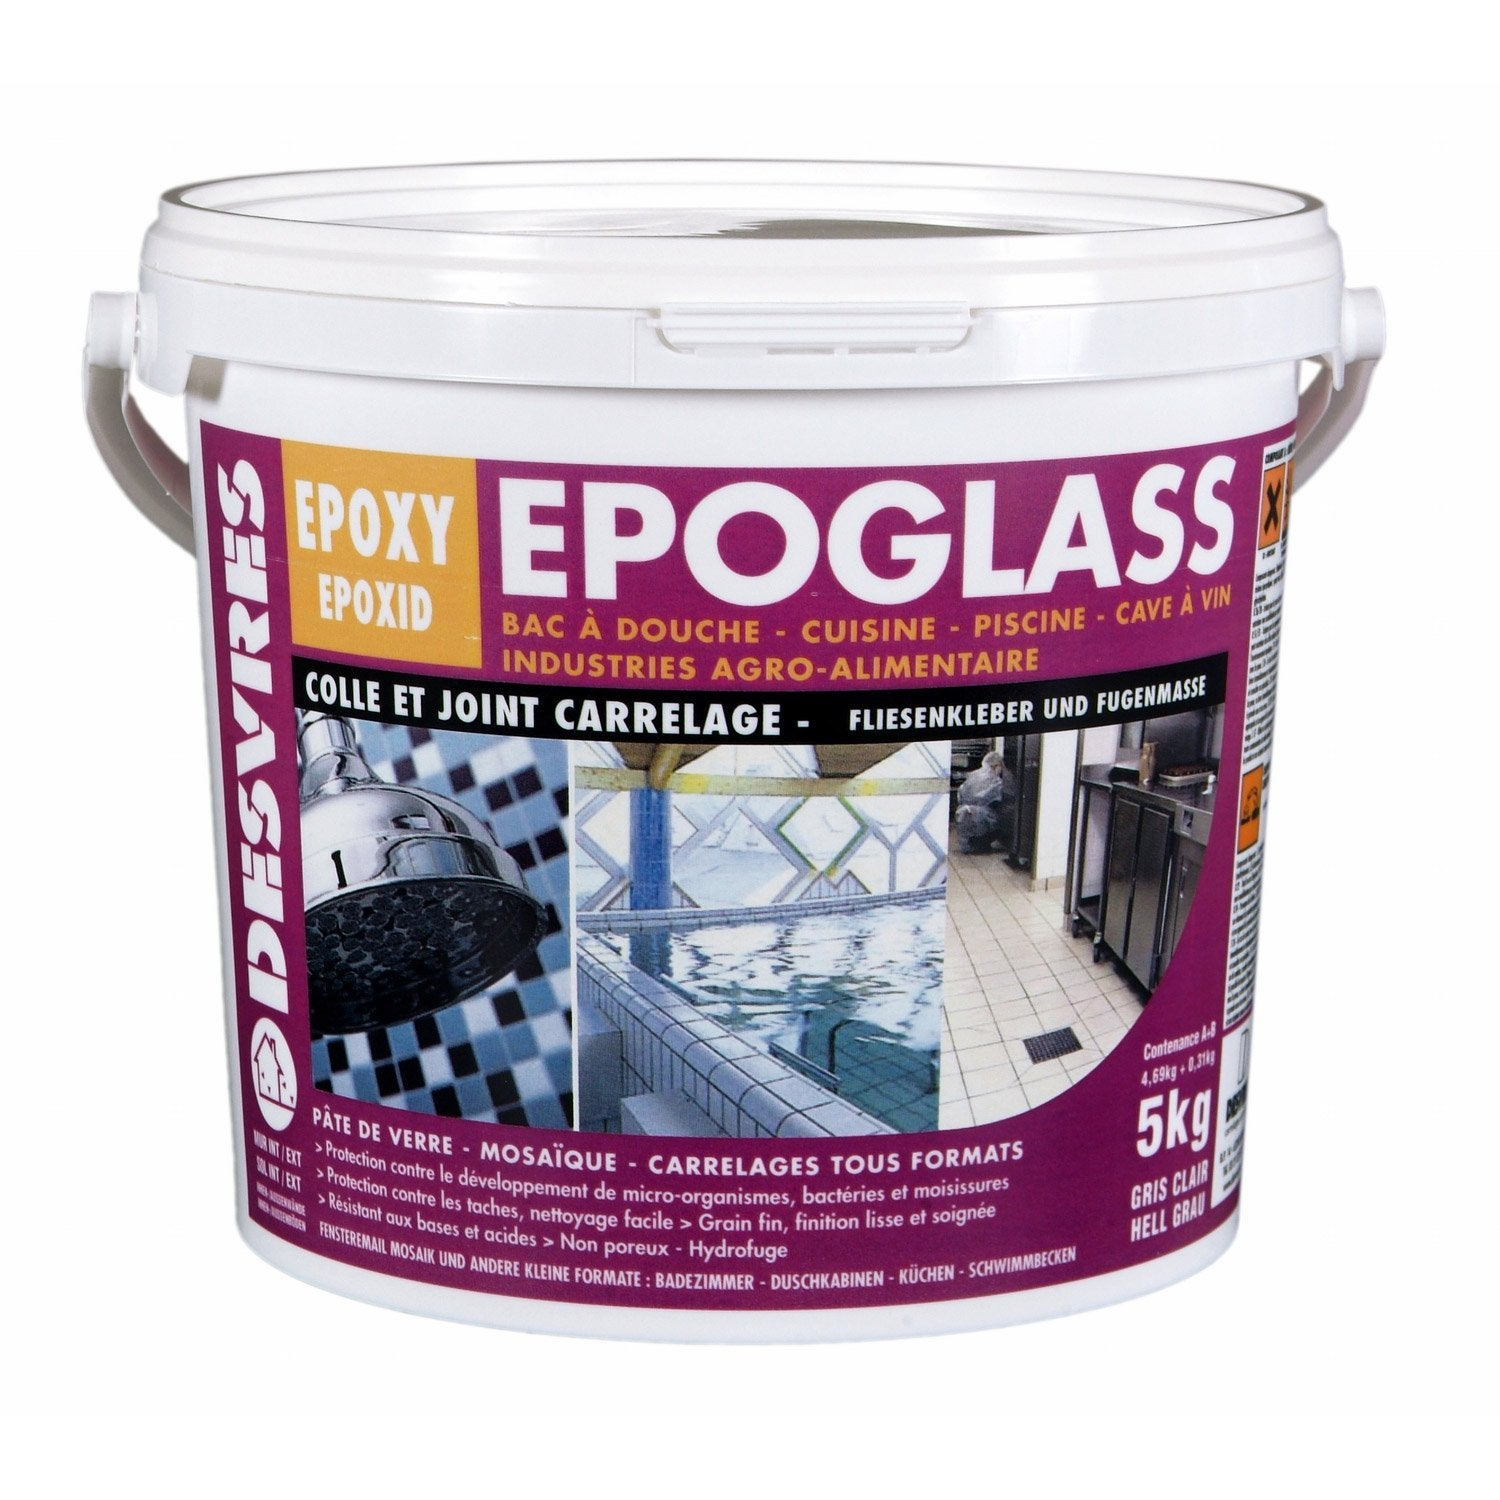 Colle et joint epoxy epoglass pour carrelage et mosa que for Colle carrelage exterieur leroy merlin